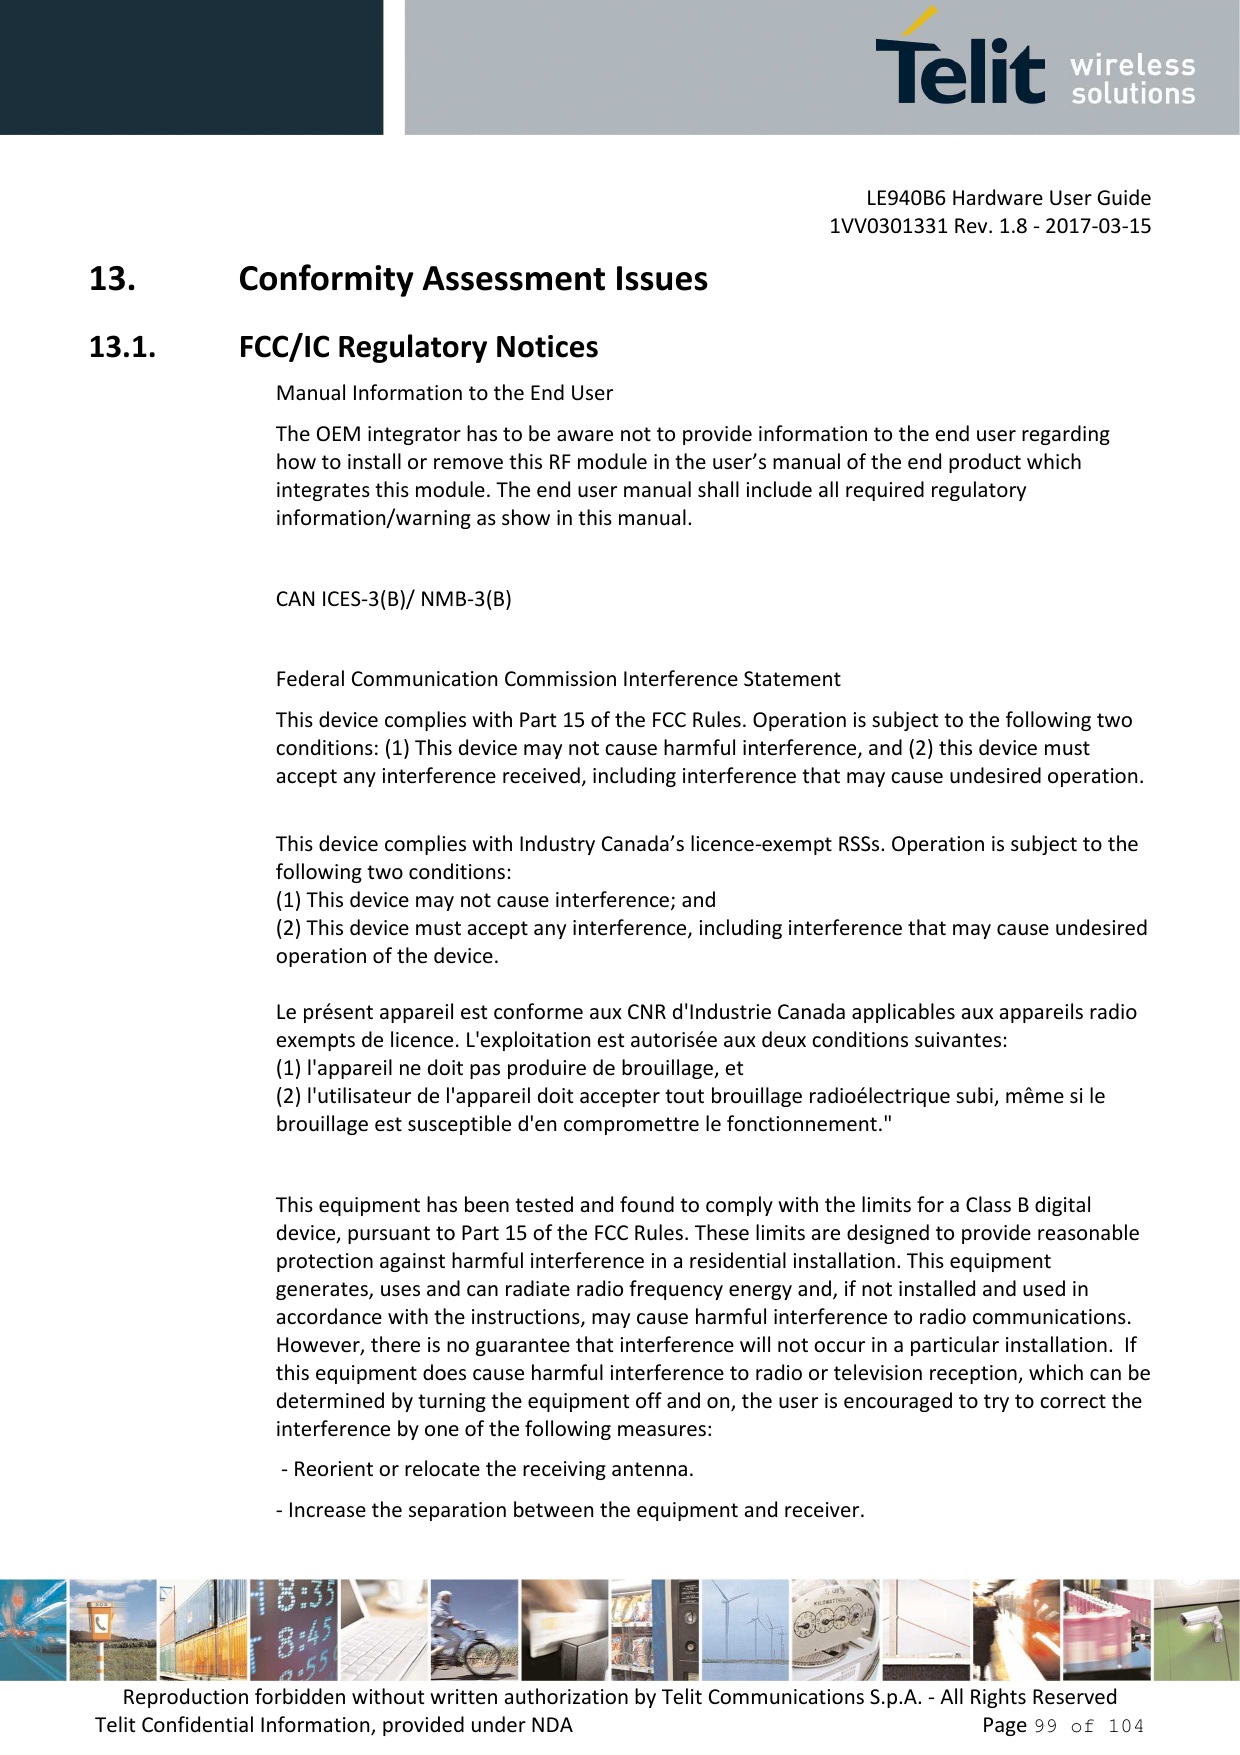 """LE940B6 Hardware User Guide     1VV0301331 Rev. 1.8 - 2017-03-15 Reproduction forbidden without written authorization by Telit Communications S.p.A. - All Rights Reserved Telit Confidential Information, provided under NDA                 Page 99 of 104 13. Conformity Assessment Issues 13.1. FCC/IC Regulatory Notices Manual Information to the End User    The OEM integrator has to be aware not to provide information to the end user regarding how to install or remove this RF module in the user's manual of the end product which integrates this module. The end user manual shall include all required regulatory information/warning as show in this manual.  CAN ICES-3(B)/ NMB-3(B)  Federal Communication Commission Interference Statement  This device complies with Part 15 of the FCC Rules. Operation is subject to the following two conditions: (1) This device may not cause harmful interference, and (2) this device must accept any interference received, including interference that may cause undesired operation.   This device complies with Industry Canada's licence-exempt RSSs. Operation is subject to the  following two conditions: (1) This device may not cause interference; and (2) This device must accept any interference, including interference that may cause undesired  operation of the device.  Le présent appareil est conforme aux CNR d'Industrie Canada applicables aux appareils radio  exempts de licence. L'exploitation est autorisée aux deux conditions suivantes:  (1) l'appareil ne doit pas produire de brouillage, et  (2) l'utilisateur de l'appareil doit accepter tout brouillage radioélectrique subi, même si le  brouillage est susceptible d'en compromettre le fonctionnement.""""  This equipment has been tested and found to comply with the limits for a Class B digital device, pursuant to Part 15 of the FCC Rules. These limits are designed to provide reasonable protection against harmful interference in a residential installation. This equipment generates, uses and can radiate ra"""